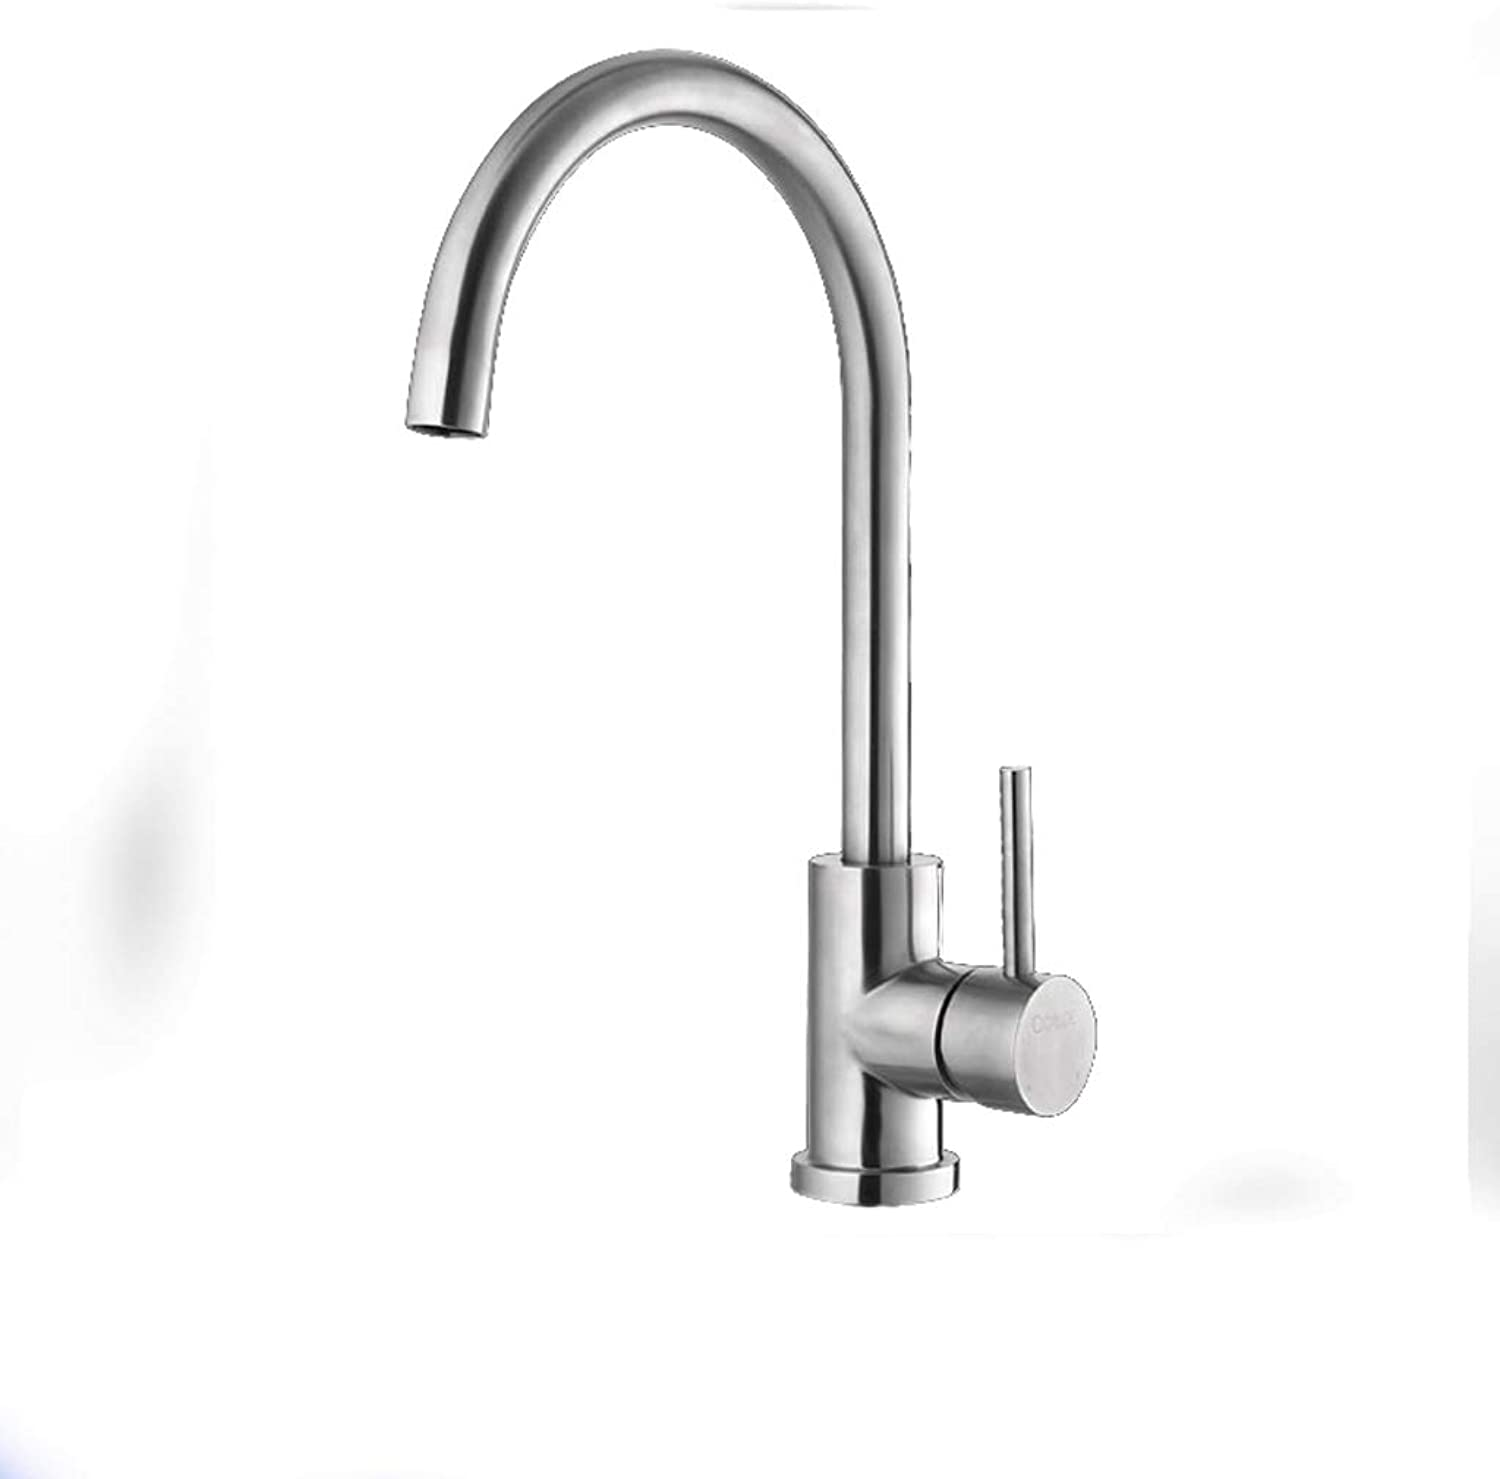 304 stainless steel kitchen sink wash basin faucet can be redated water-saving lead-free hot and cold water faucet (Size   A)